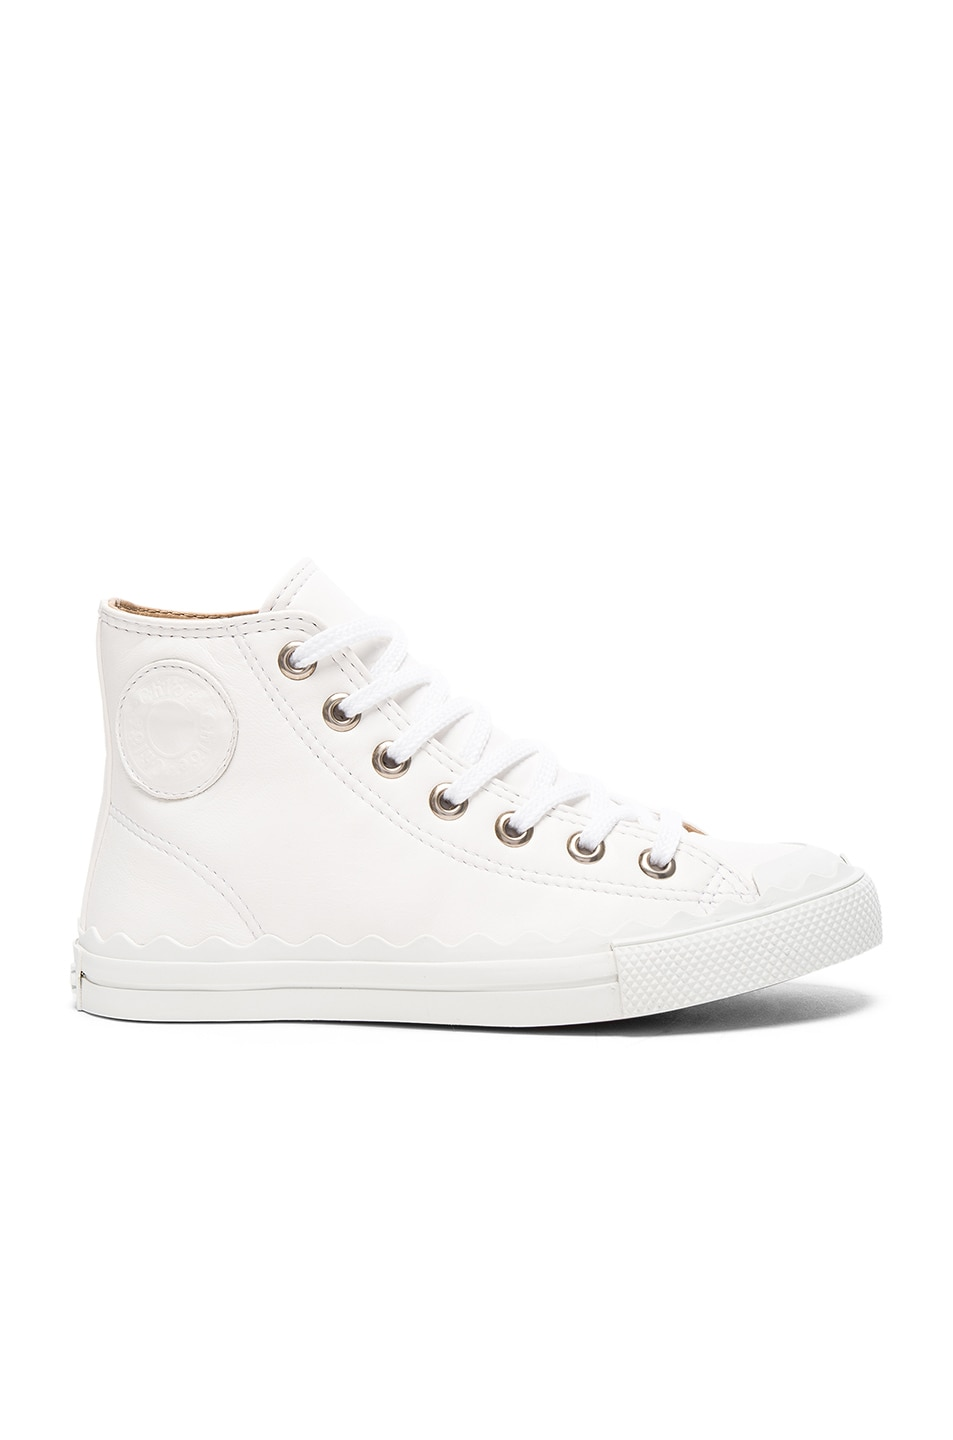 Image 1 of Chloe Leather Kyle Sneakers in White